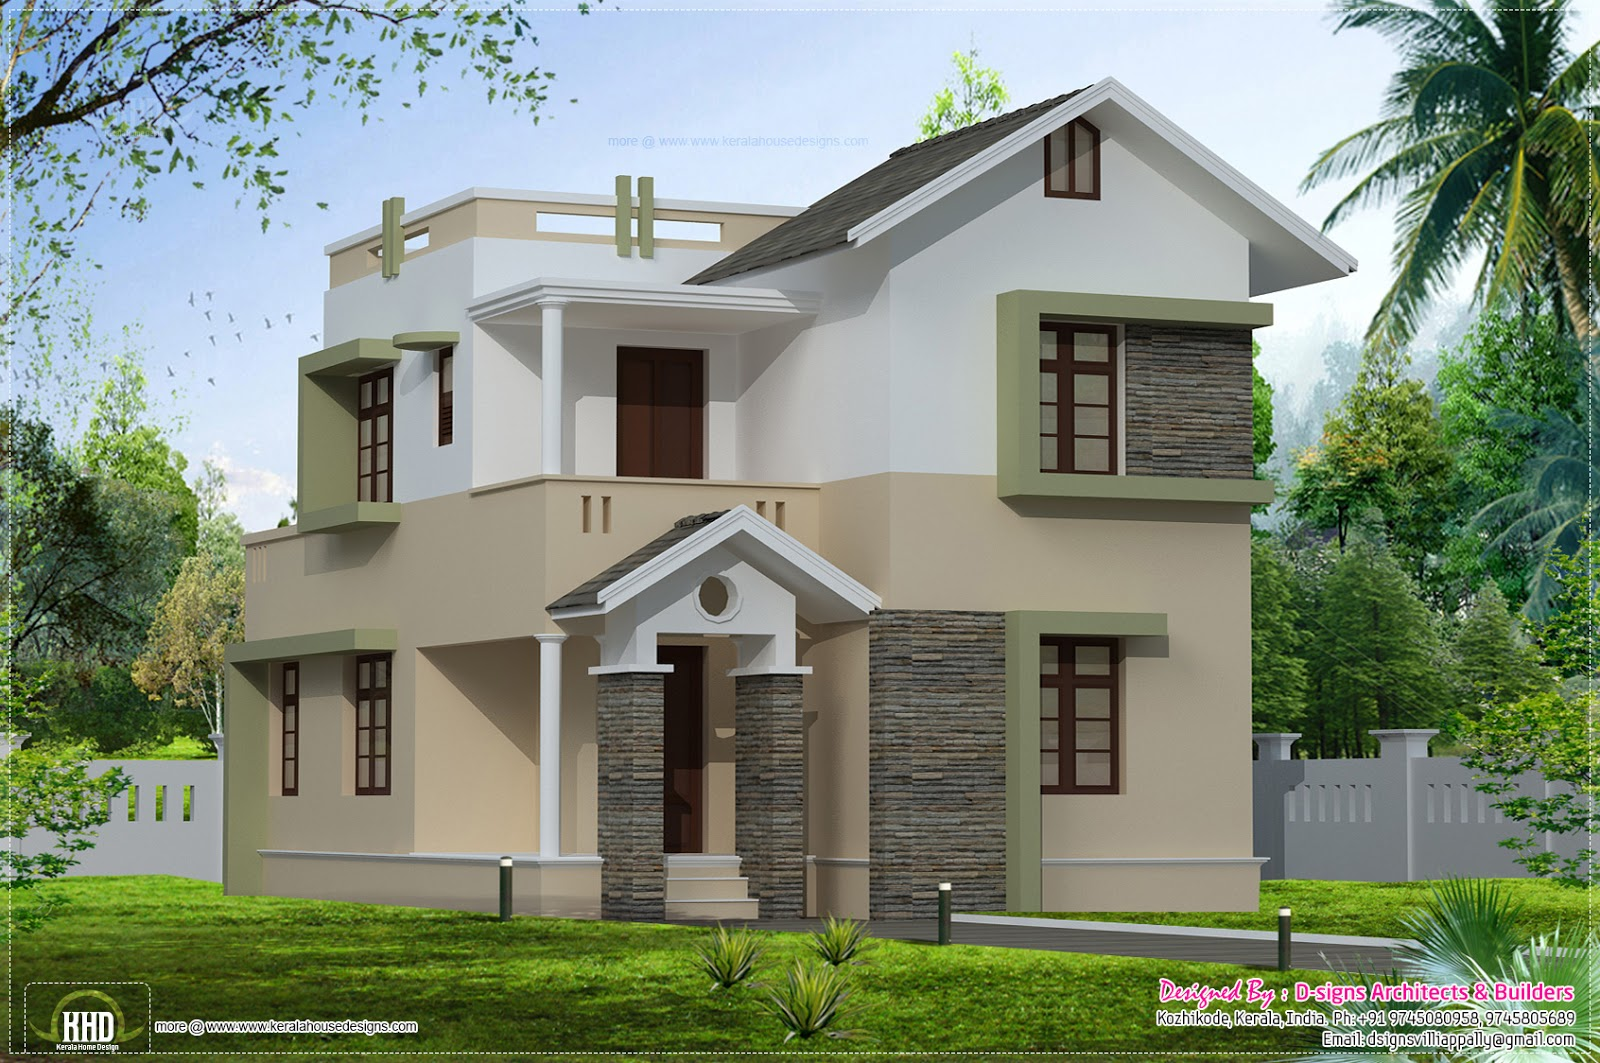 Front elevation of small houses home design and decor for Small house design kerala style